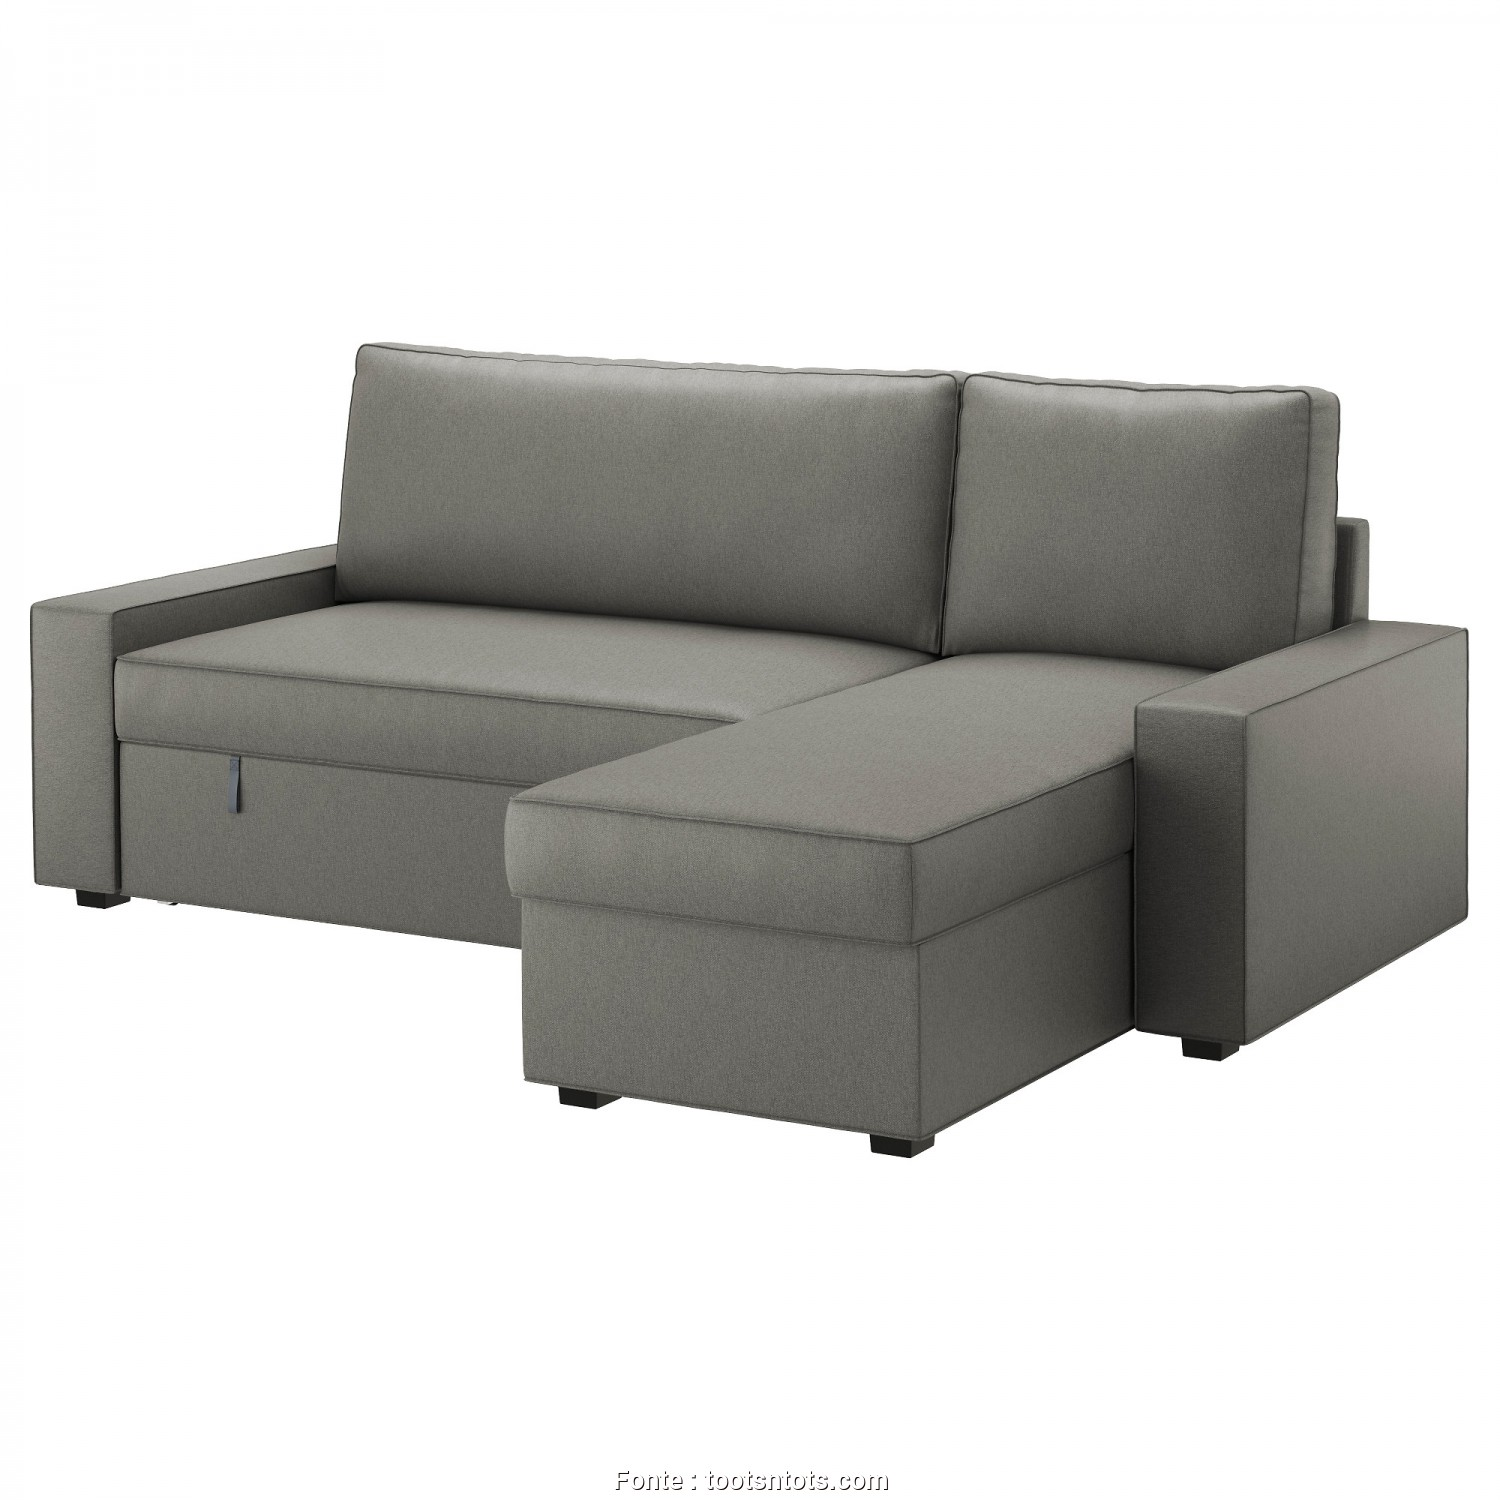 Vilasund Ikea Lt, Bello Vilasund Sofa, With Chaise Longue Borred Grey Green Ikea In Designs